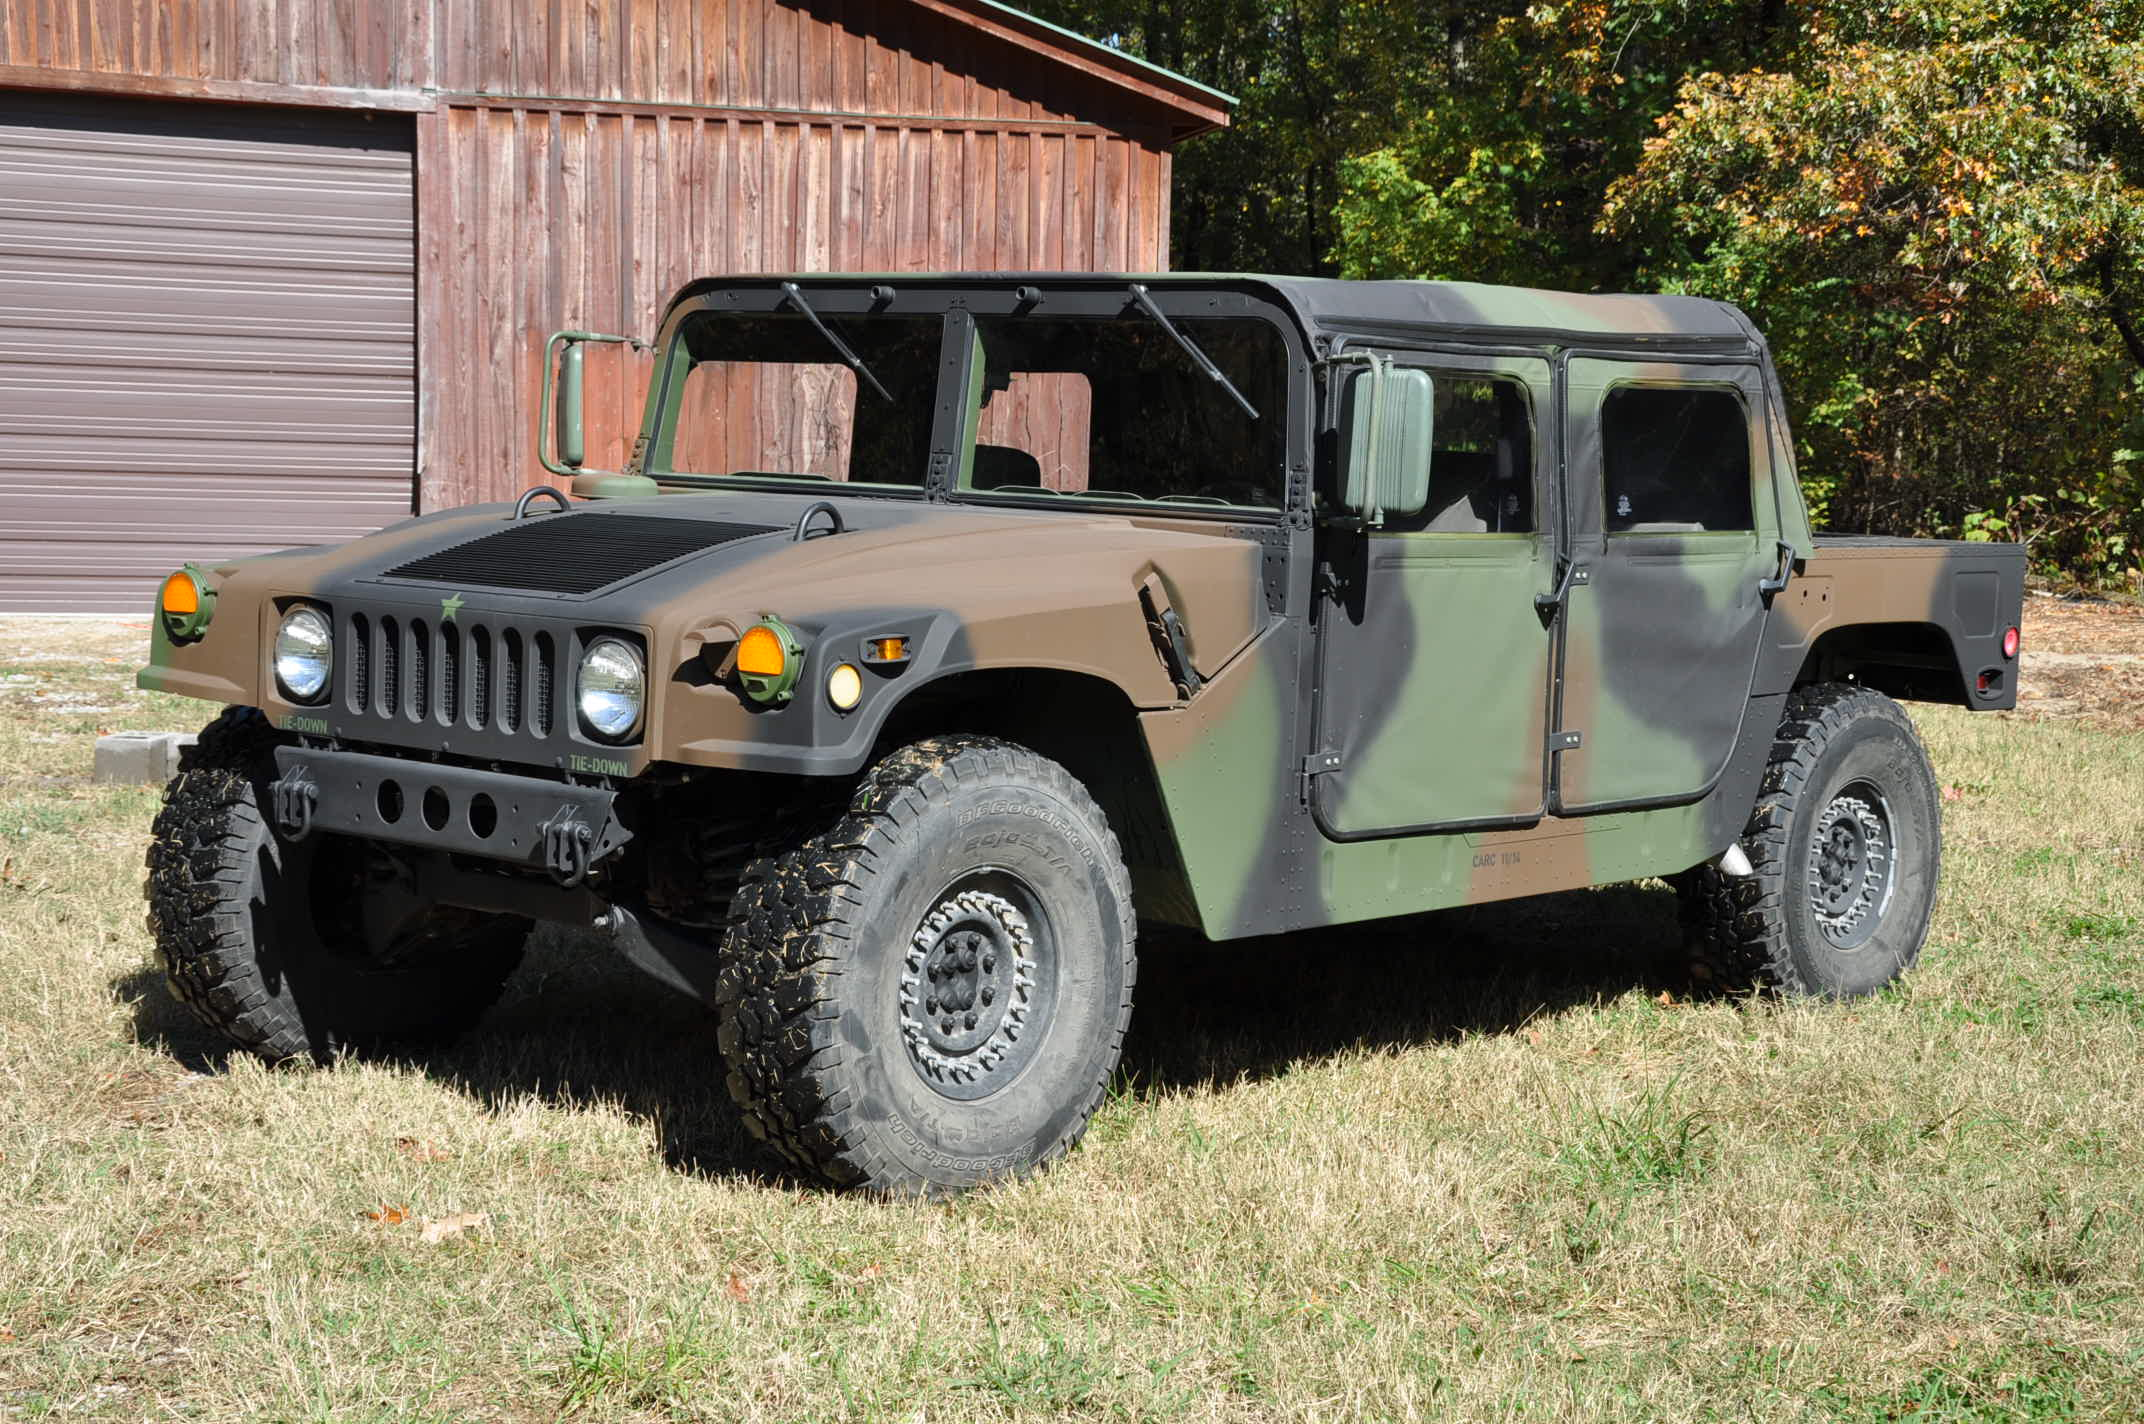 Used H133 | Custom H133, Humvee HMMWV Builds, Accessories ... | hummer h1 for sale cheap